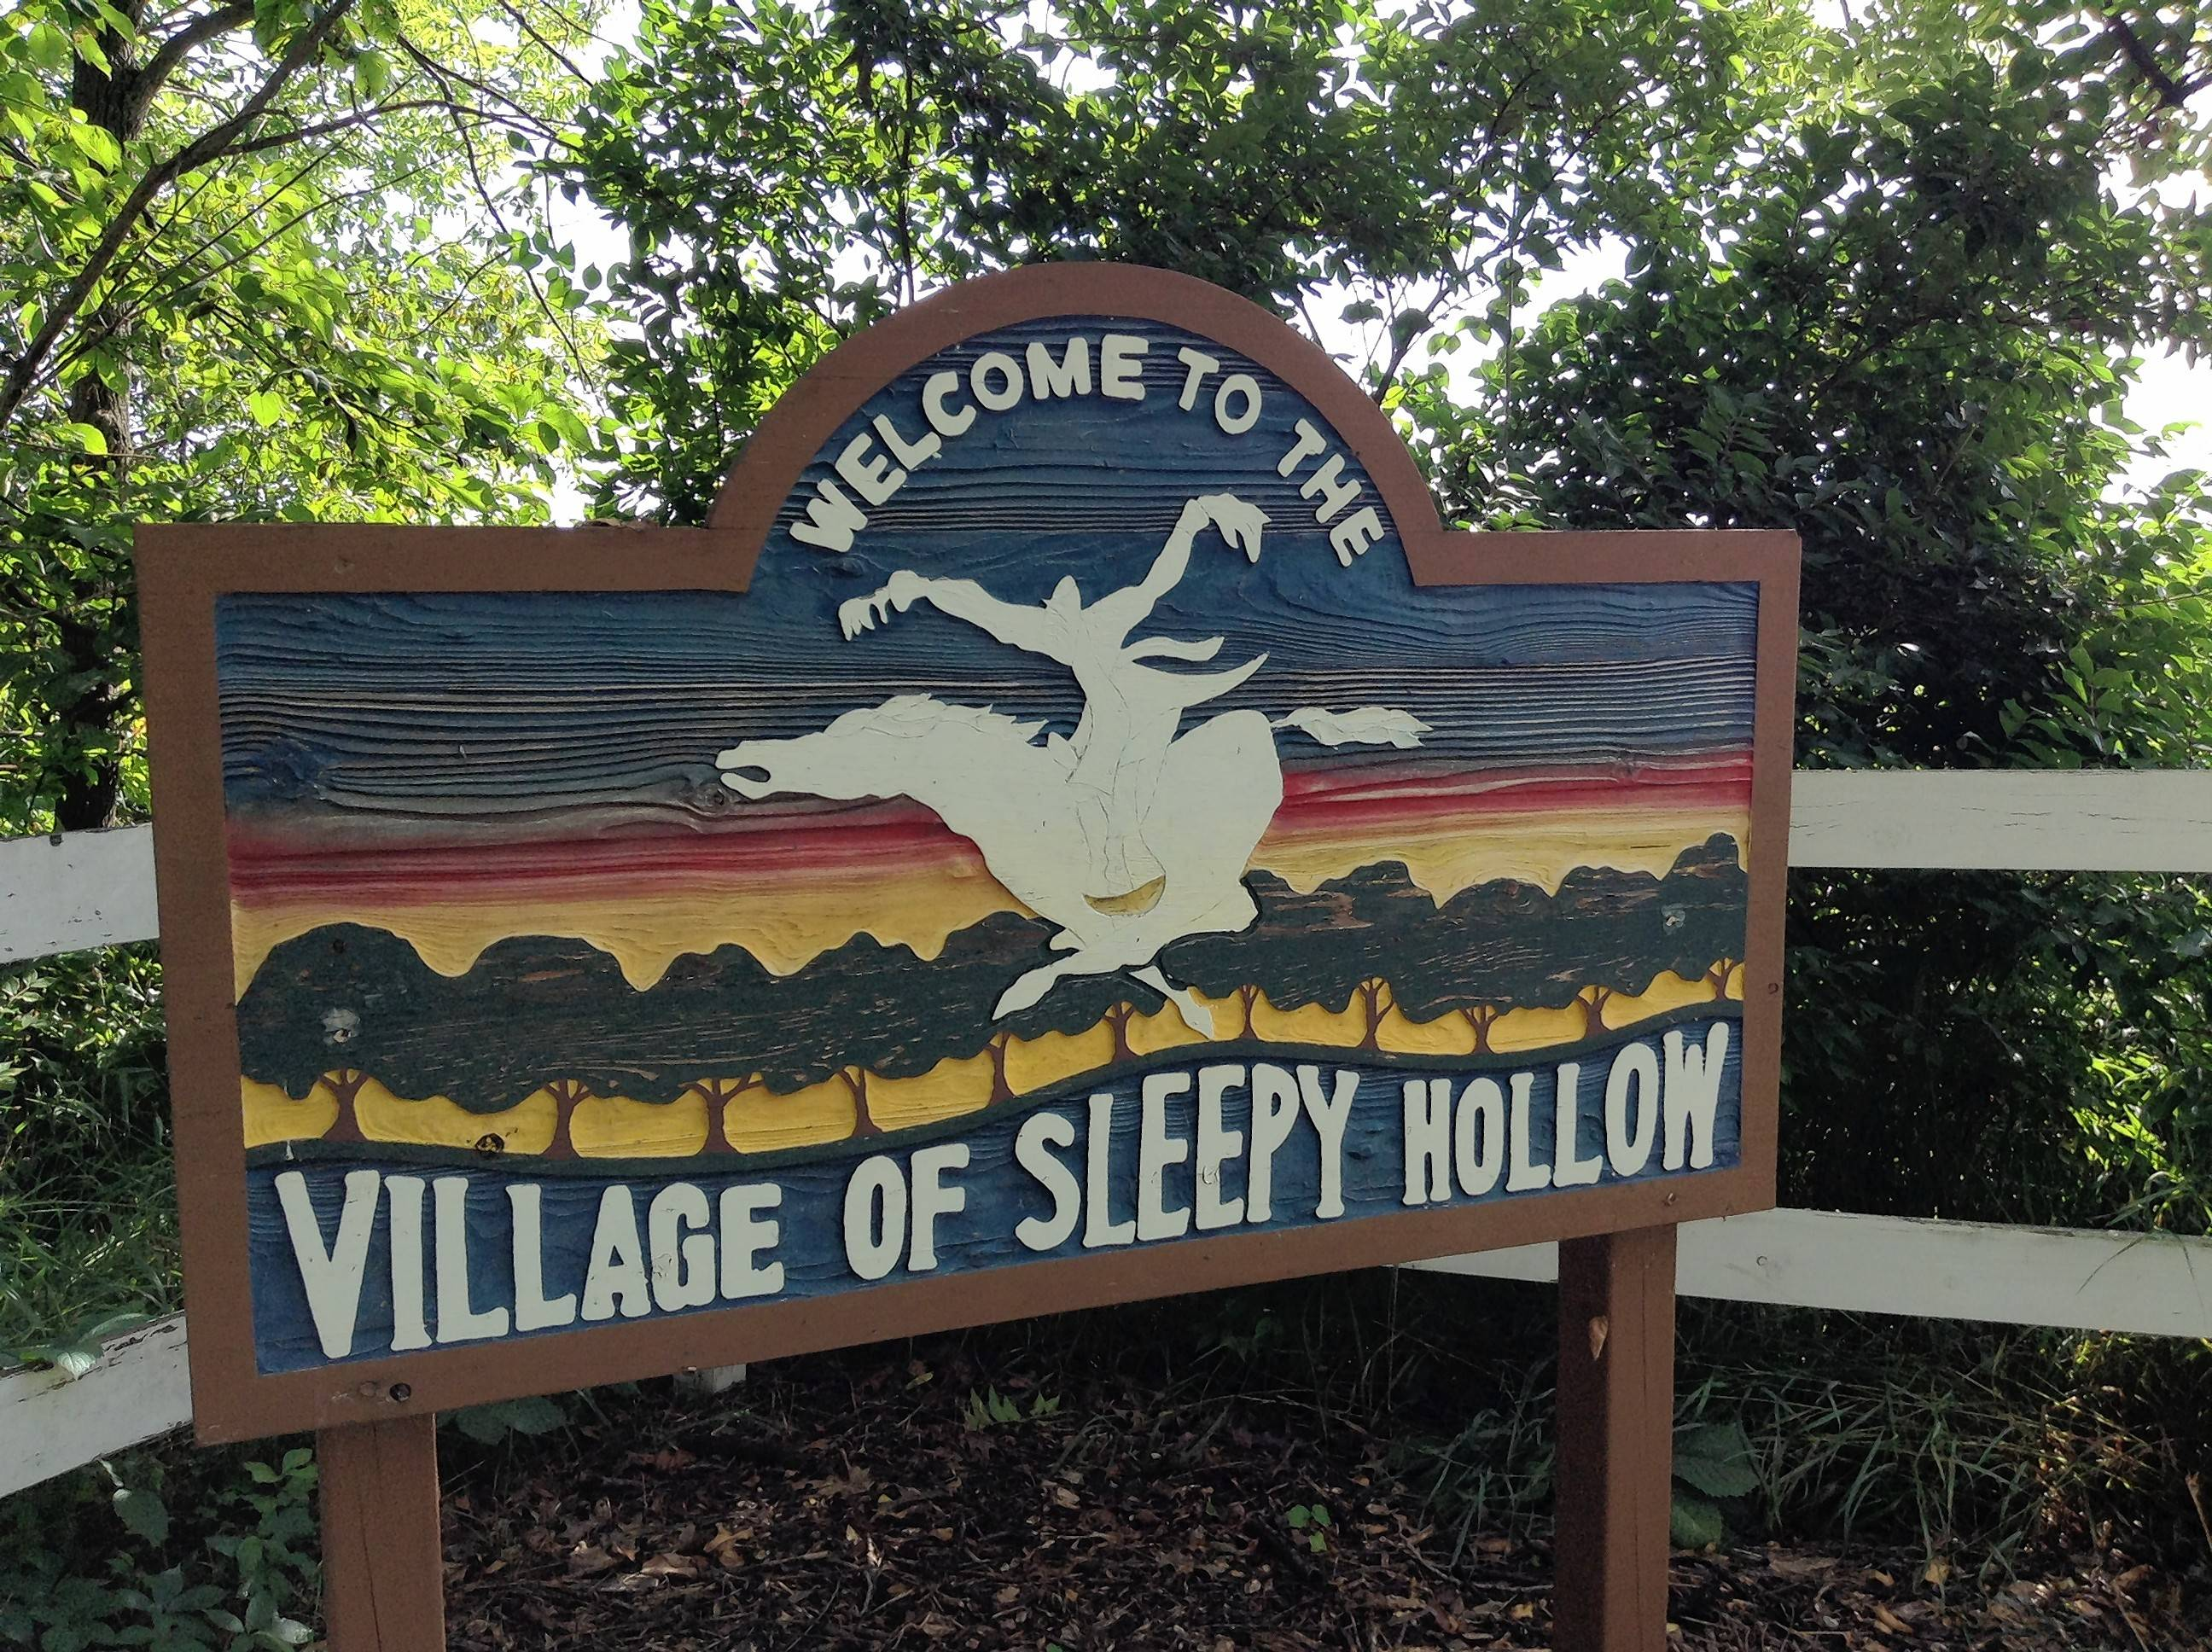 The village of Sleepy Hollow and the police department are at 1 Thorobred Lane. Regular office hours are 7 a.m. to 4 p.m. weekdays.